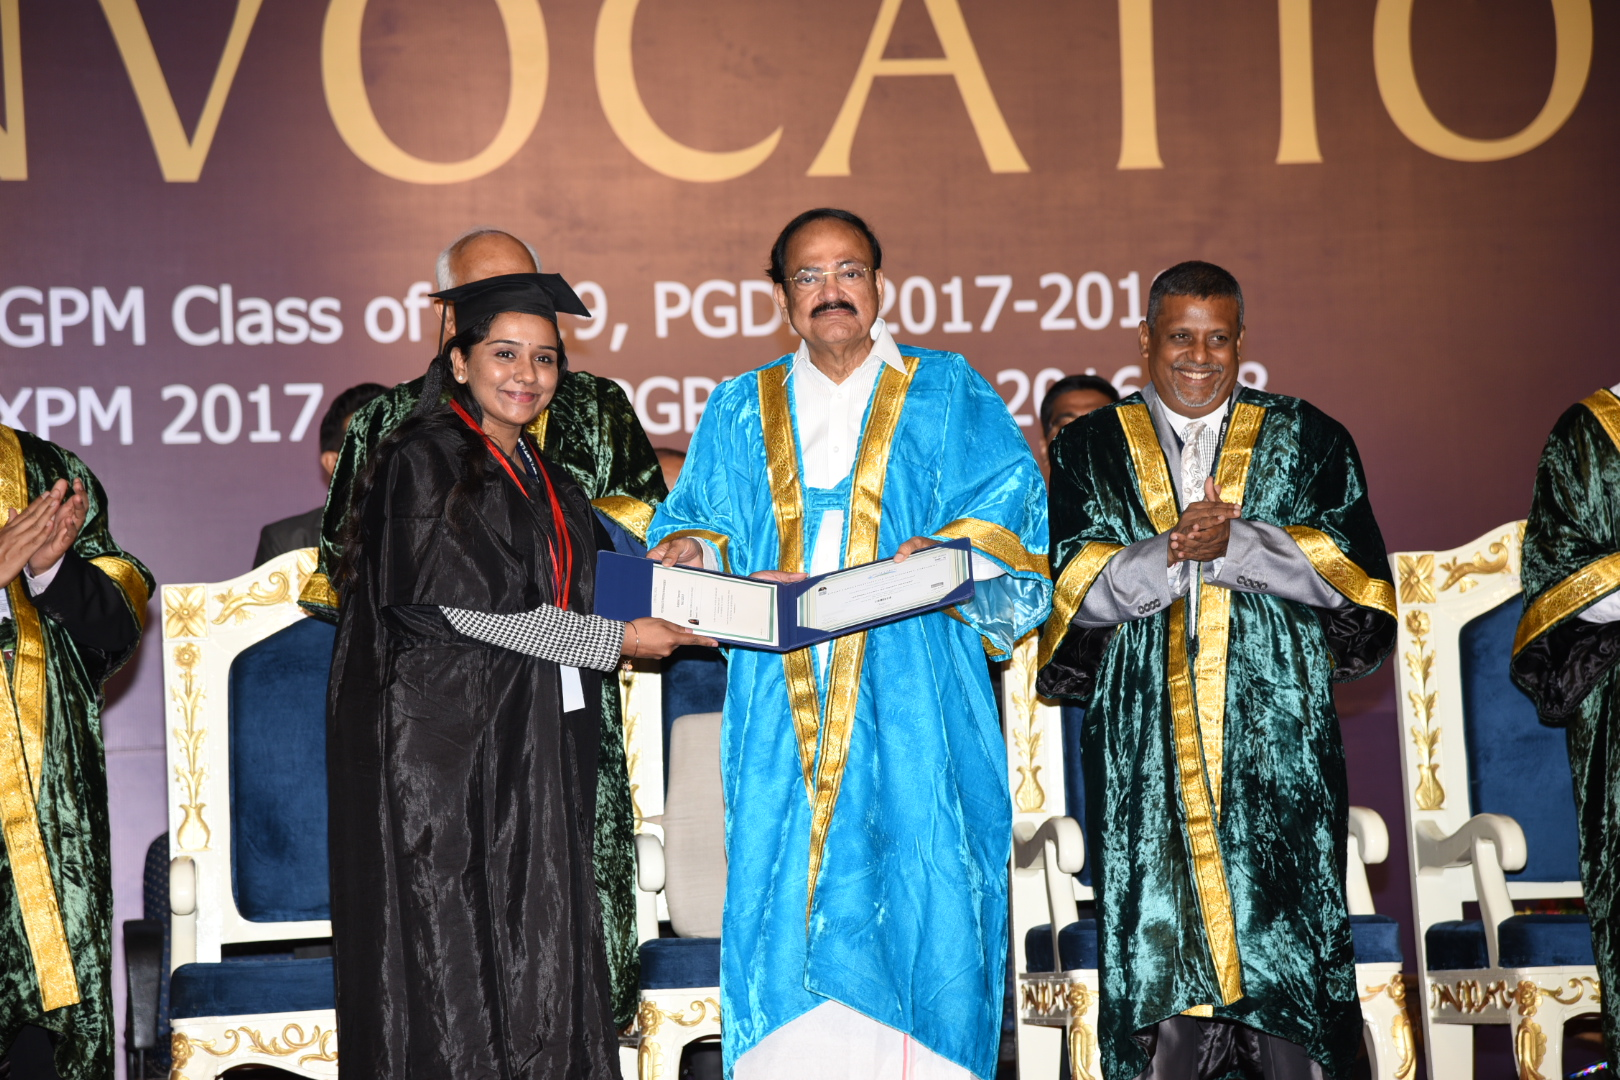 The Vice President, Shri M. Venkaiah Naidu presenting Gold Medals to the Students at the Convocation of the Great Lakes Institute of Management, in Chennai on May 21, 2019.